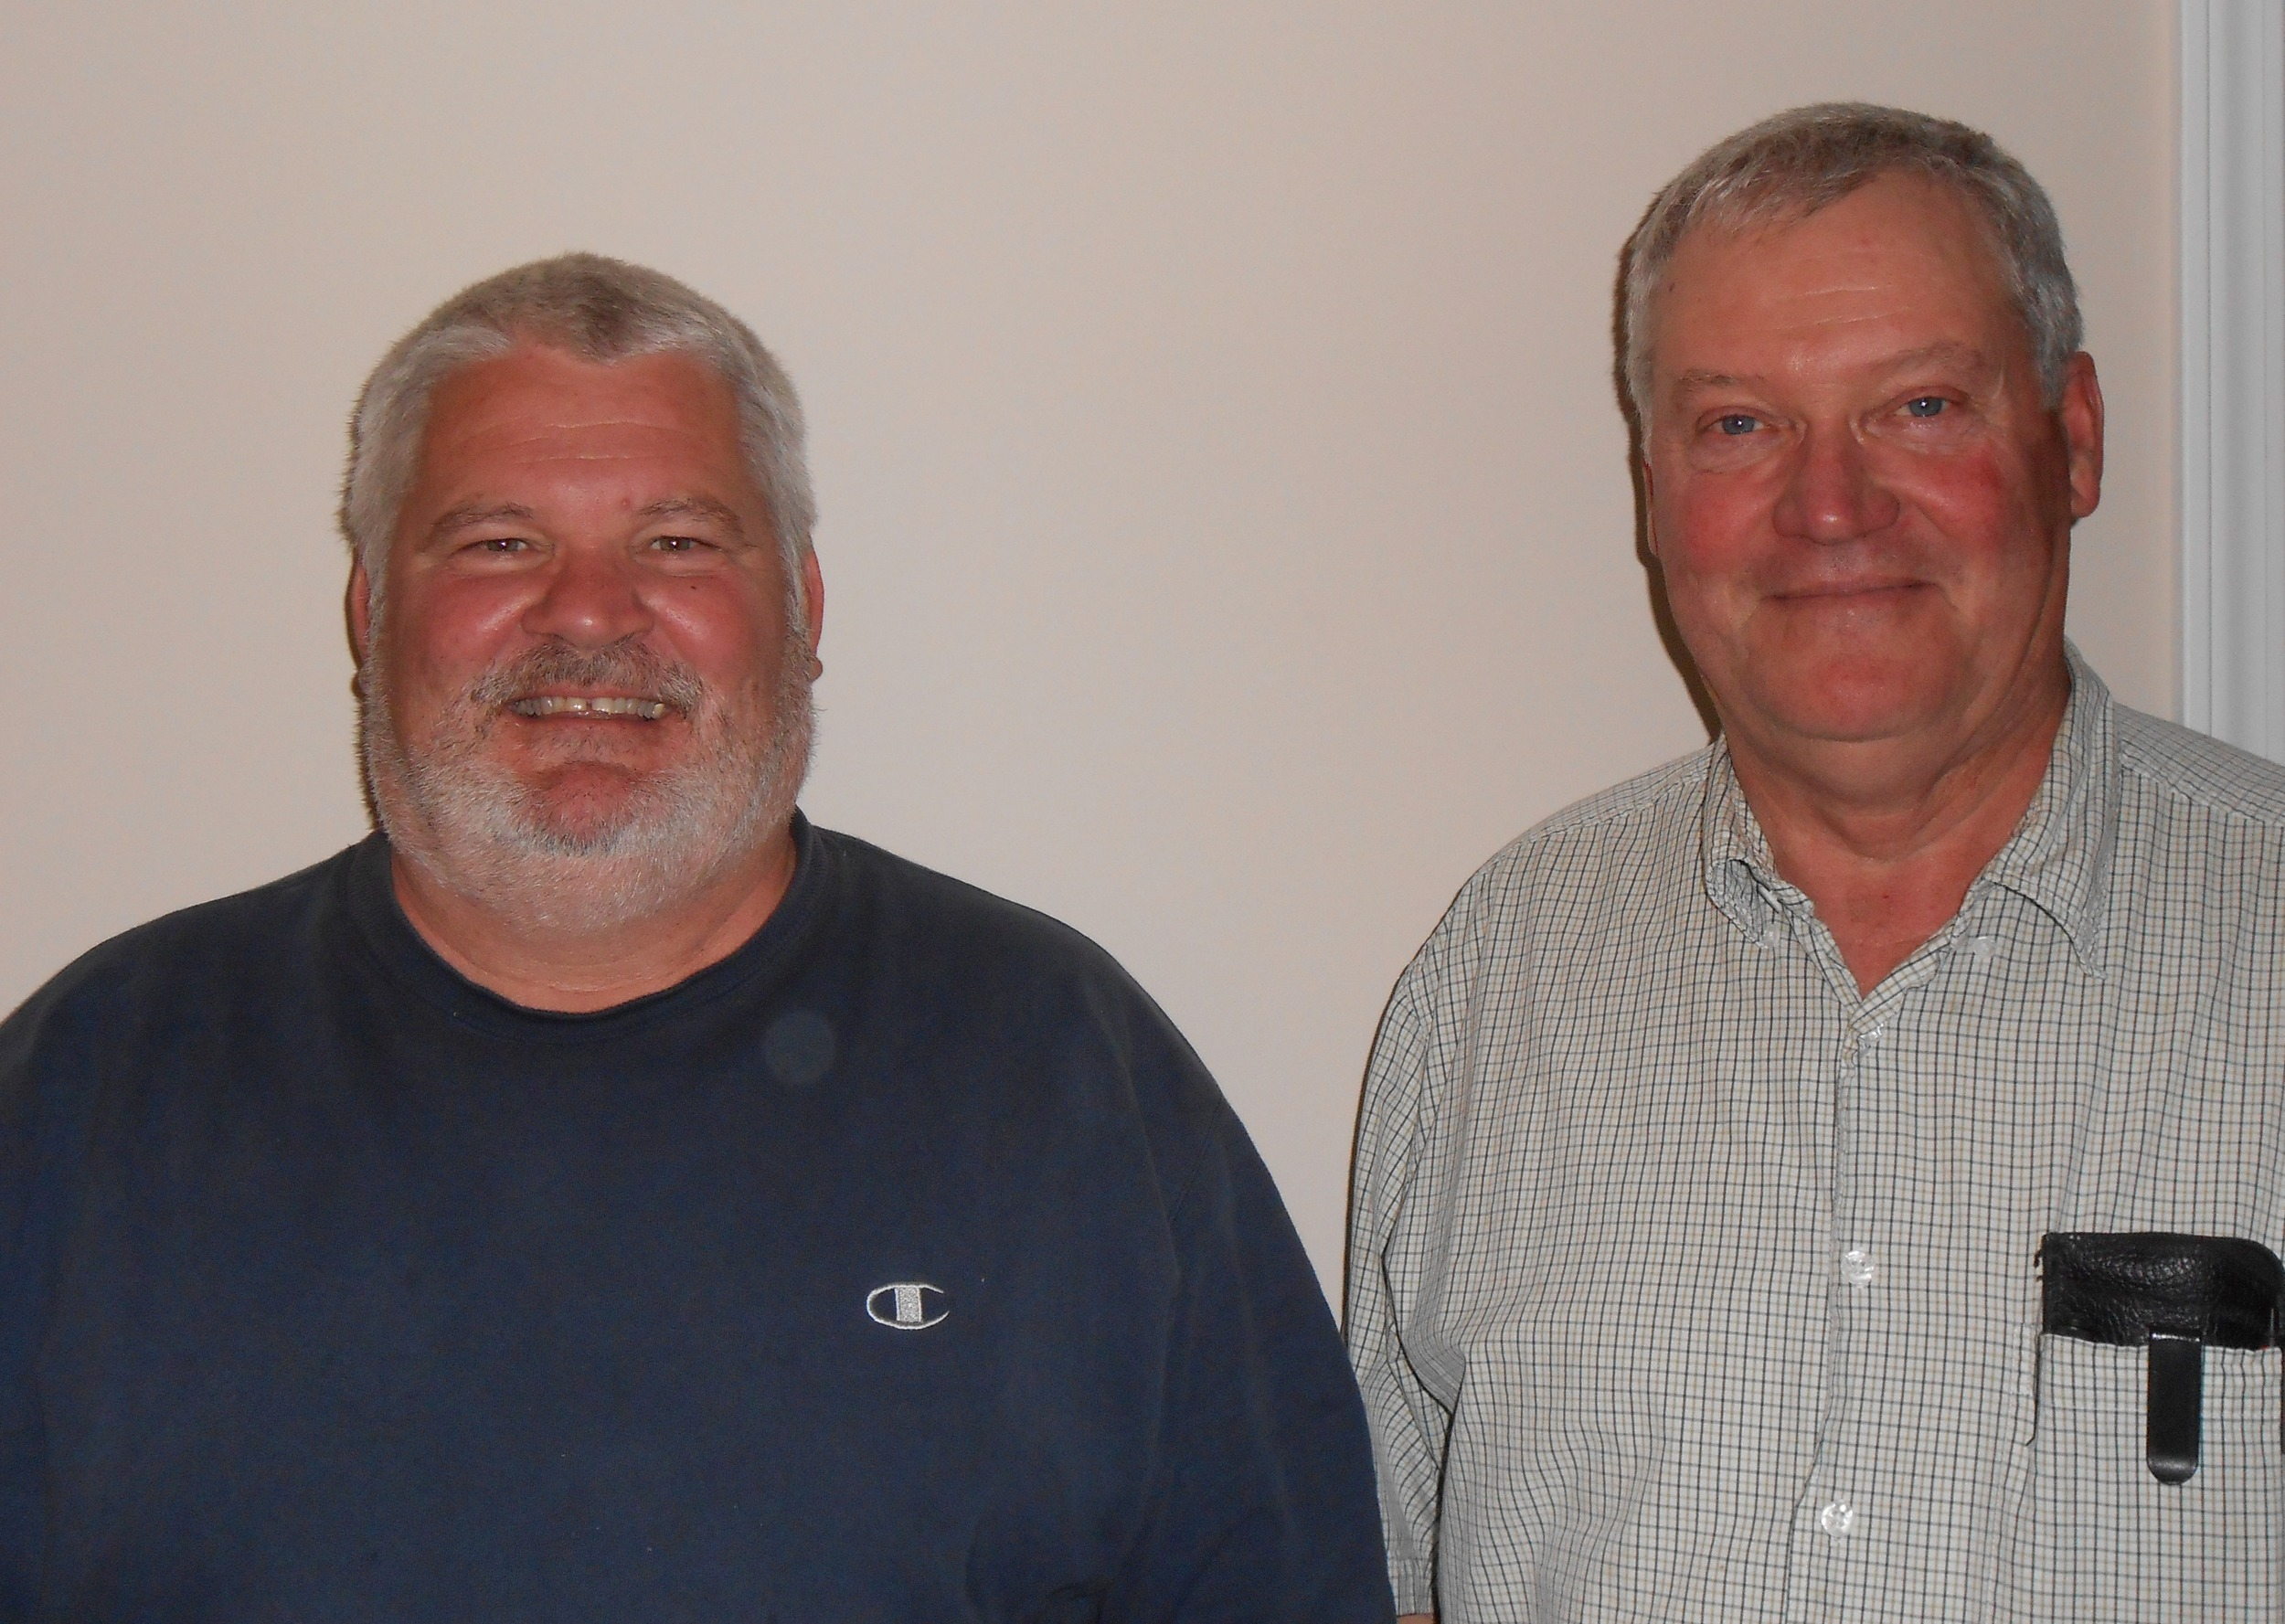 Don and Ron Ladage – Chatham, IL